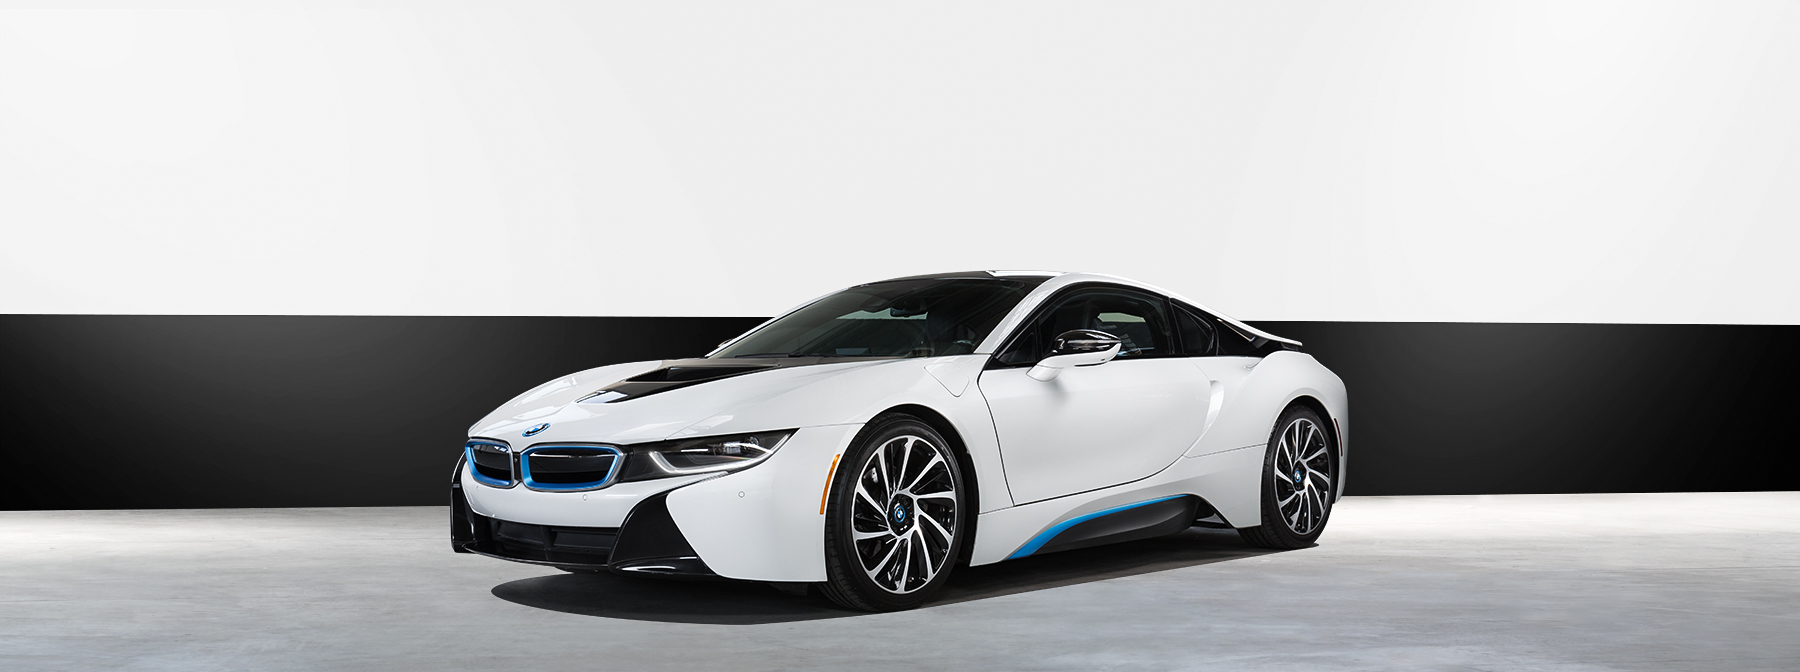 BMW I8 is a very stylish all-wheel drive turbocharged Gas/Electric High Performance Vehicle. This revolutionary BMW rental comes packed with a powerful ... & Cheap High Performance Car Rental in Los Angeles | Bu0026W Car Rental